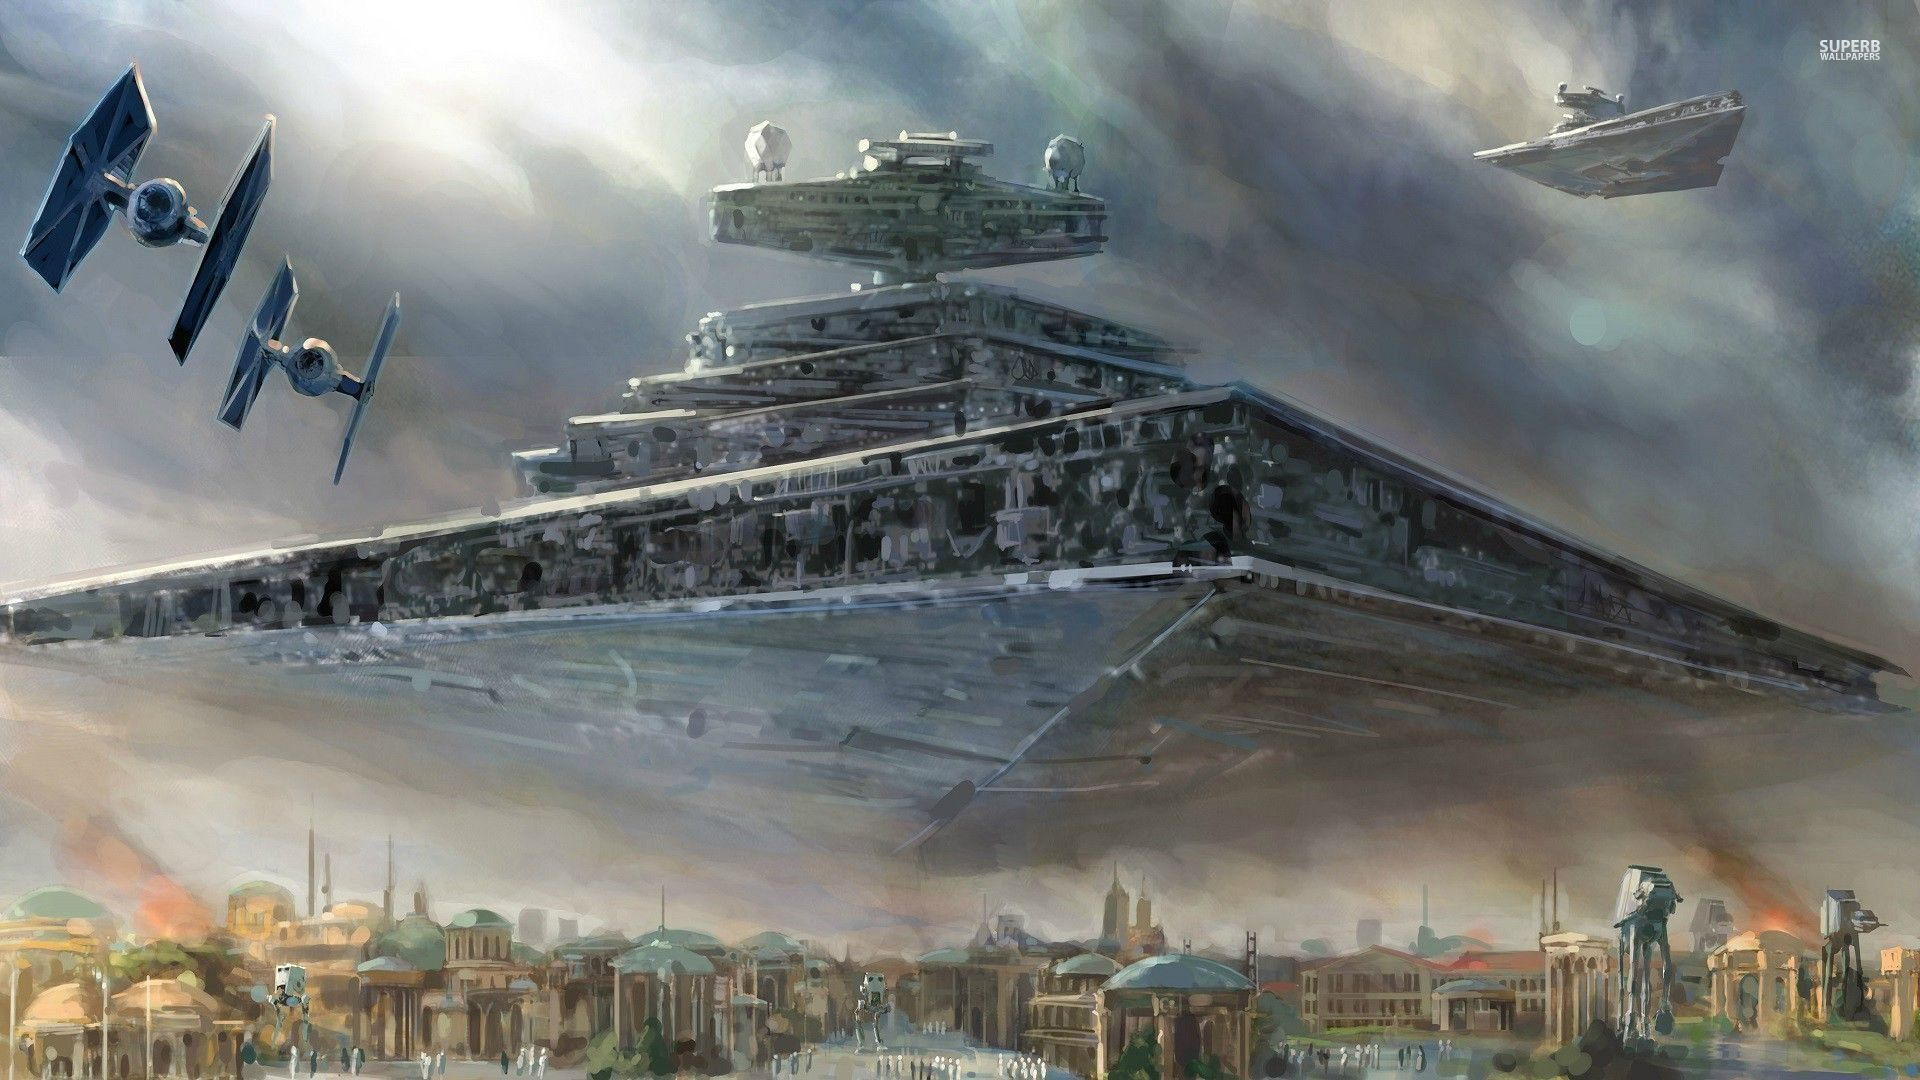 Naboo Star Wars Wallpaper Wallpaper Star Wars Spaceships Star Wars Pictures Star Wars Artwork